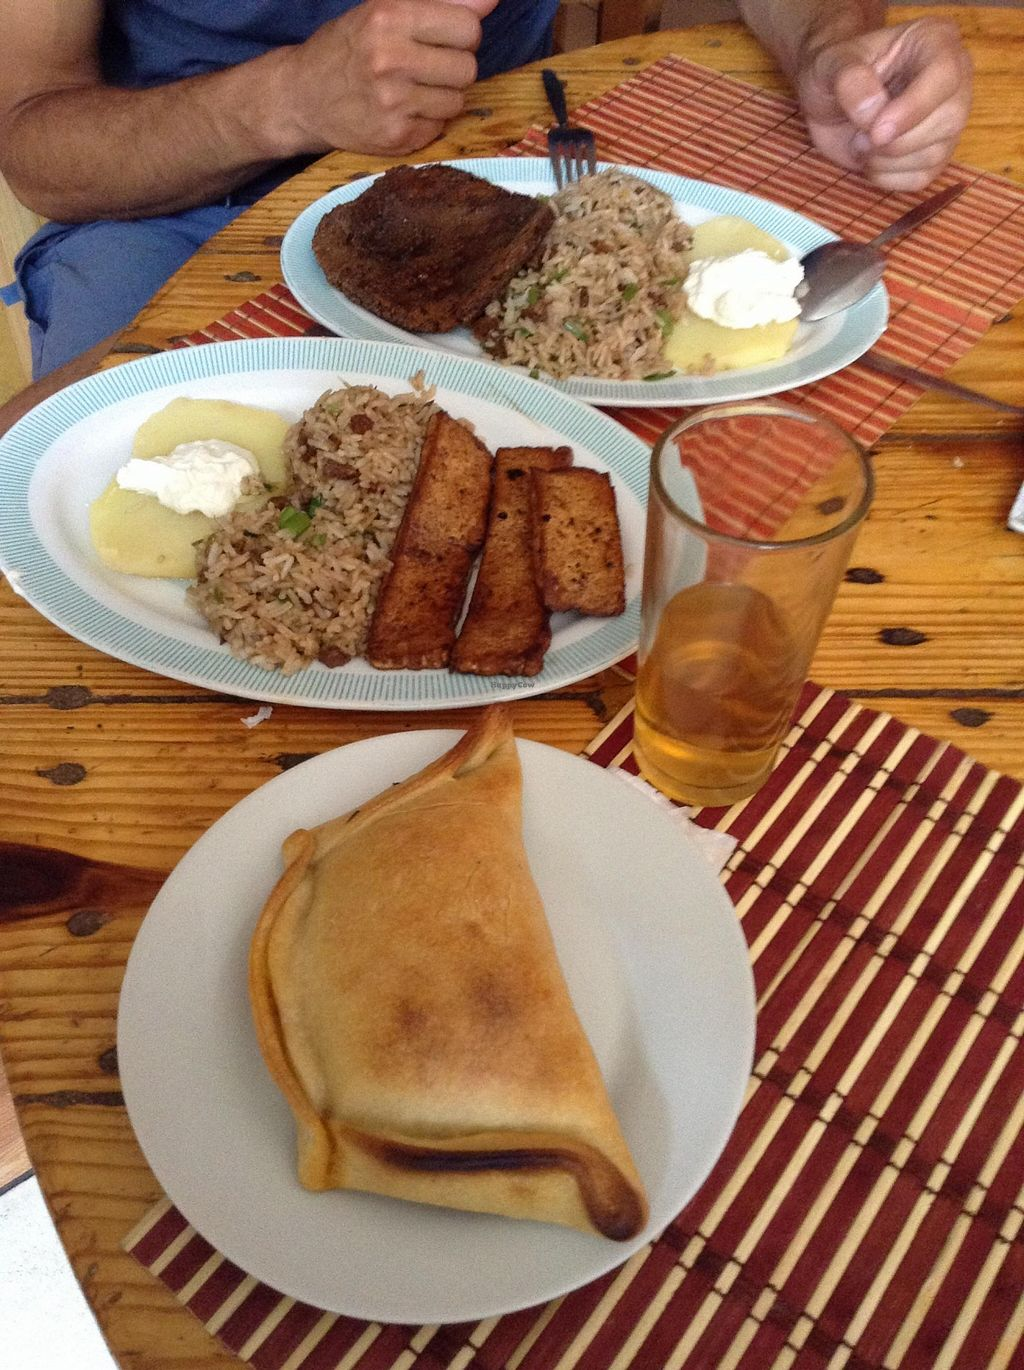 """Photo of Govinda  by <a href=""""/members/profile/eeyoresenigma"""">eeyoresenigma</a> <br/>Yummy empanada and the dish of the day! <br/> October 15, 2015  - <a href='/contact/abuse/image/6747/121381'>Report</a>"""